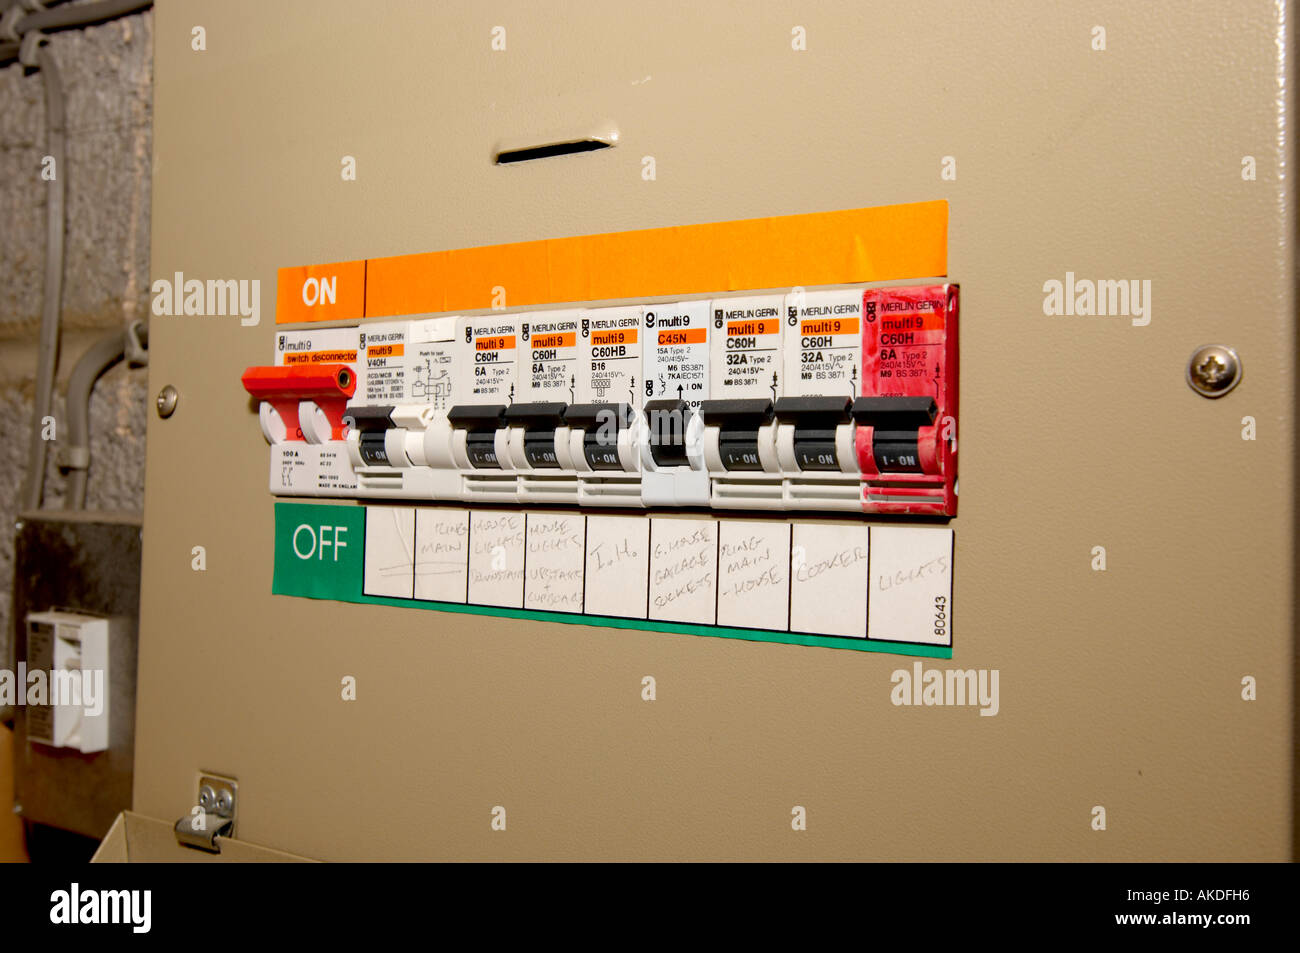 Sensational Fuse Box Circuit Breaker Wiring Diagram Wiring Digital Resources Minagakbiperorg